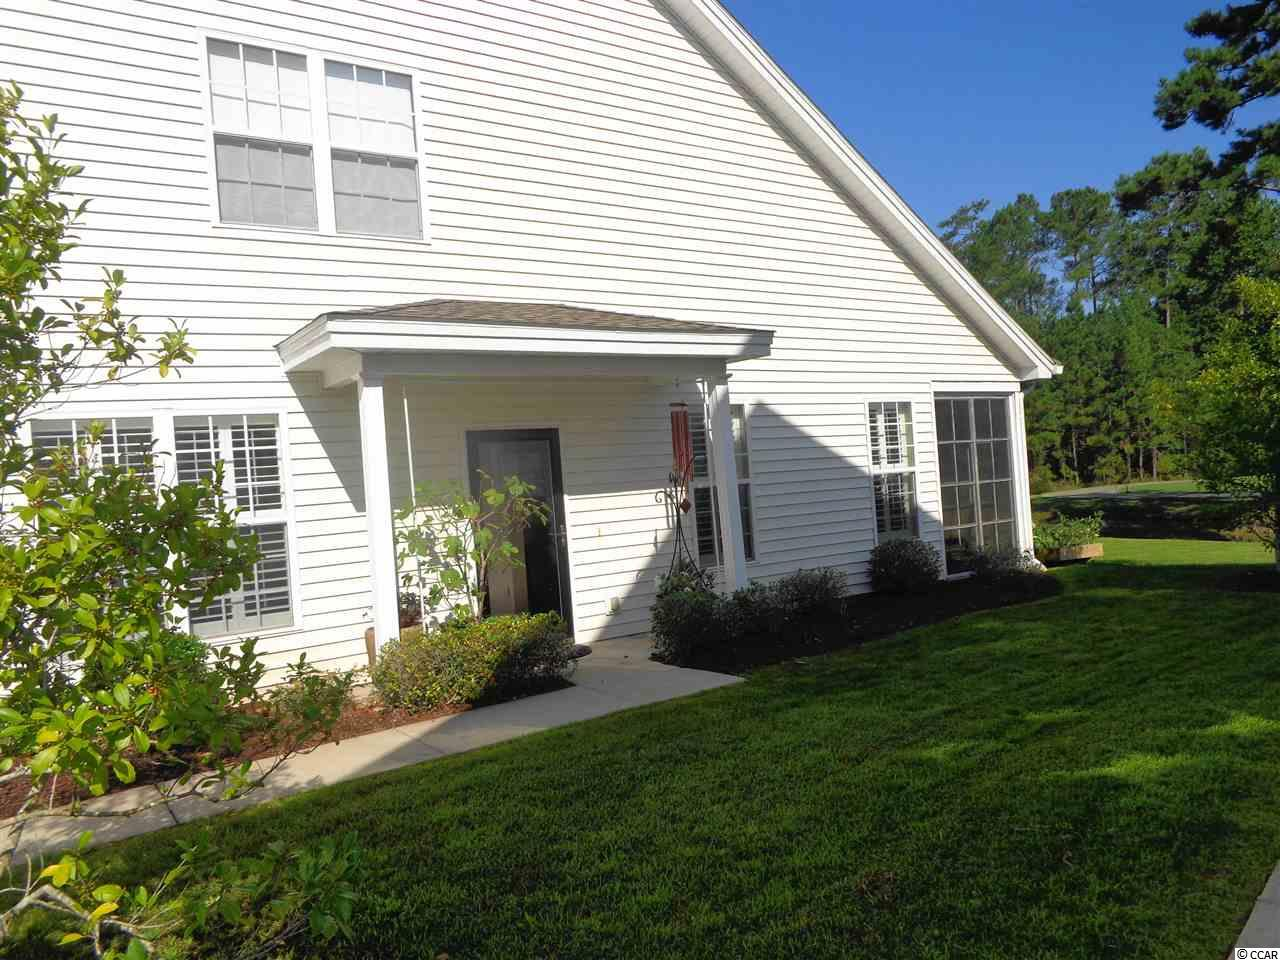 ST ANDREWS TOWNHOMES condo for sale in Myrtle Beach, SC